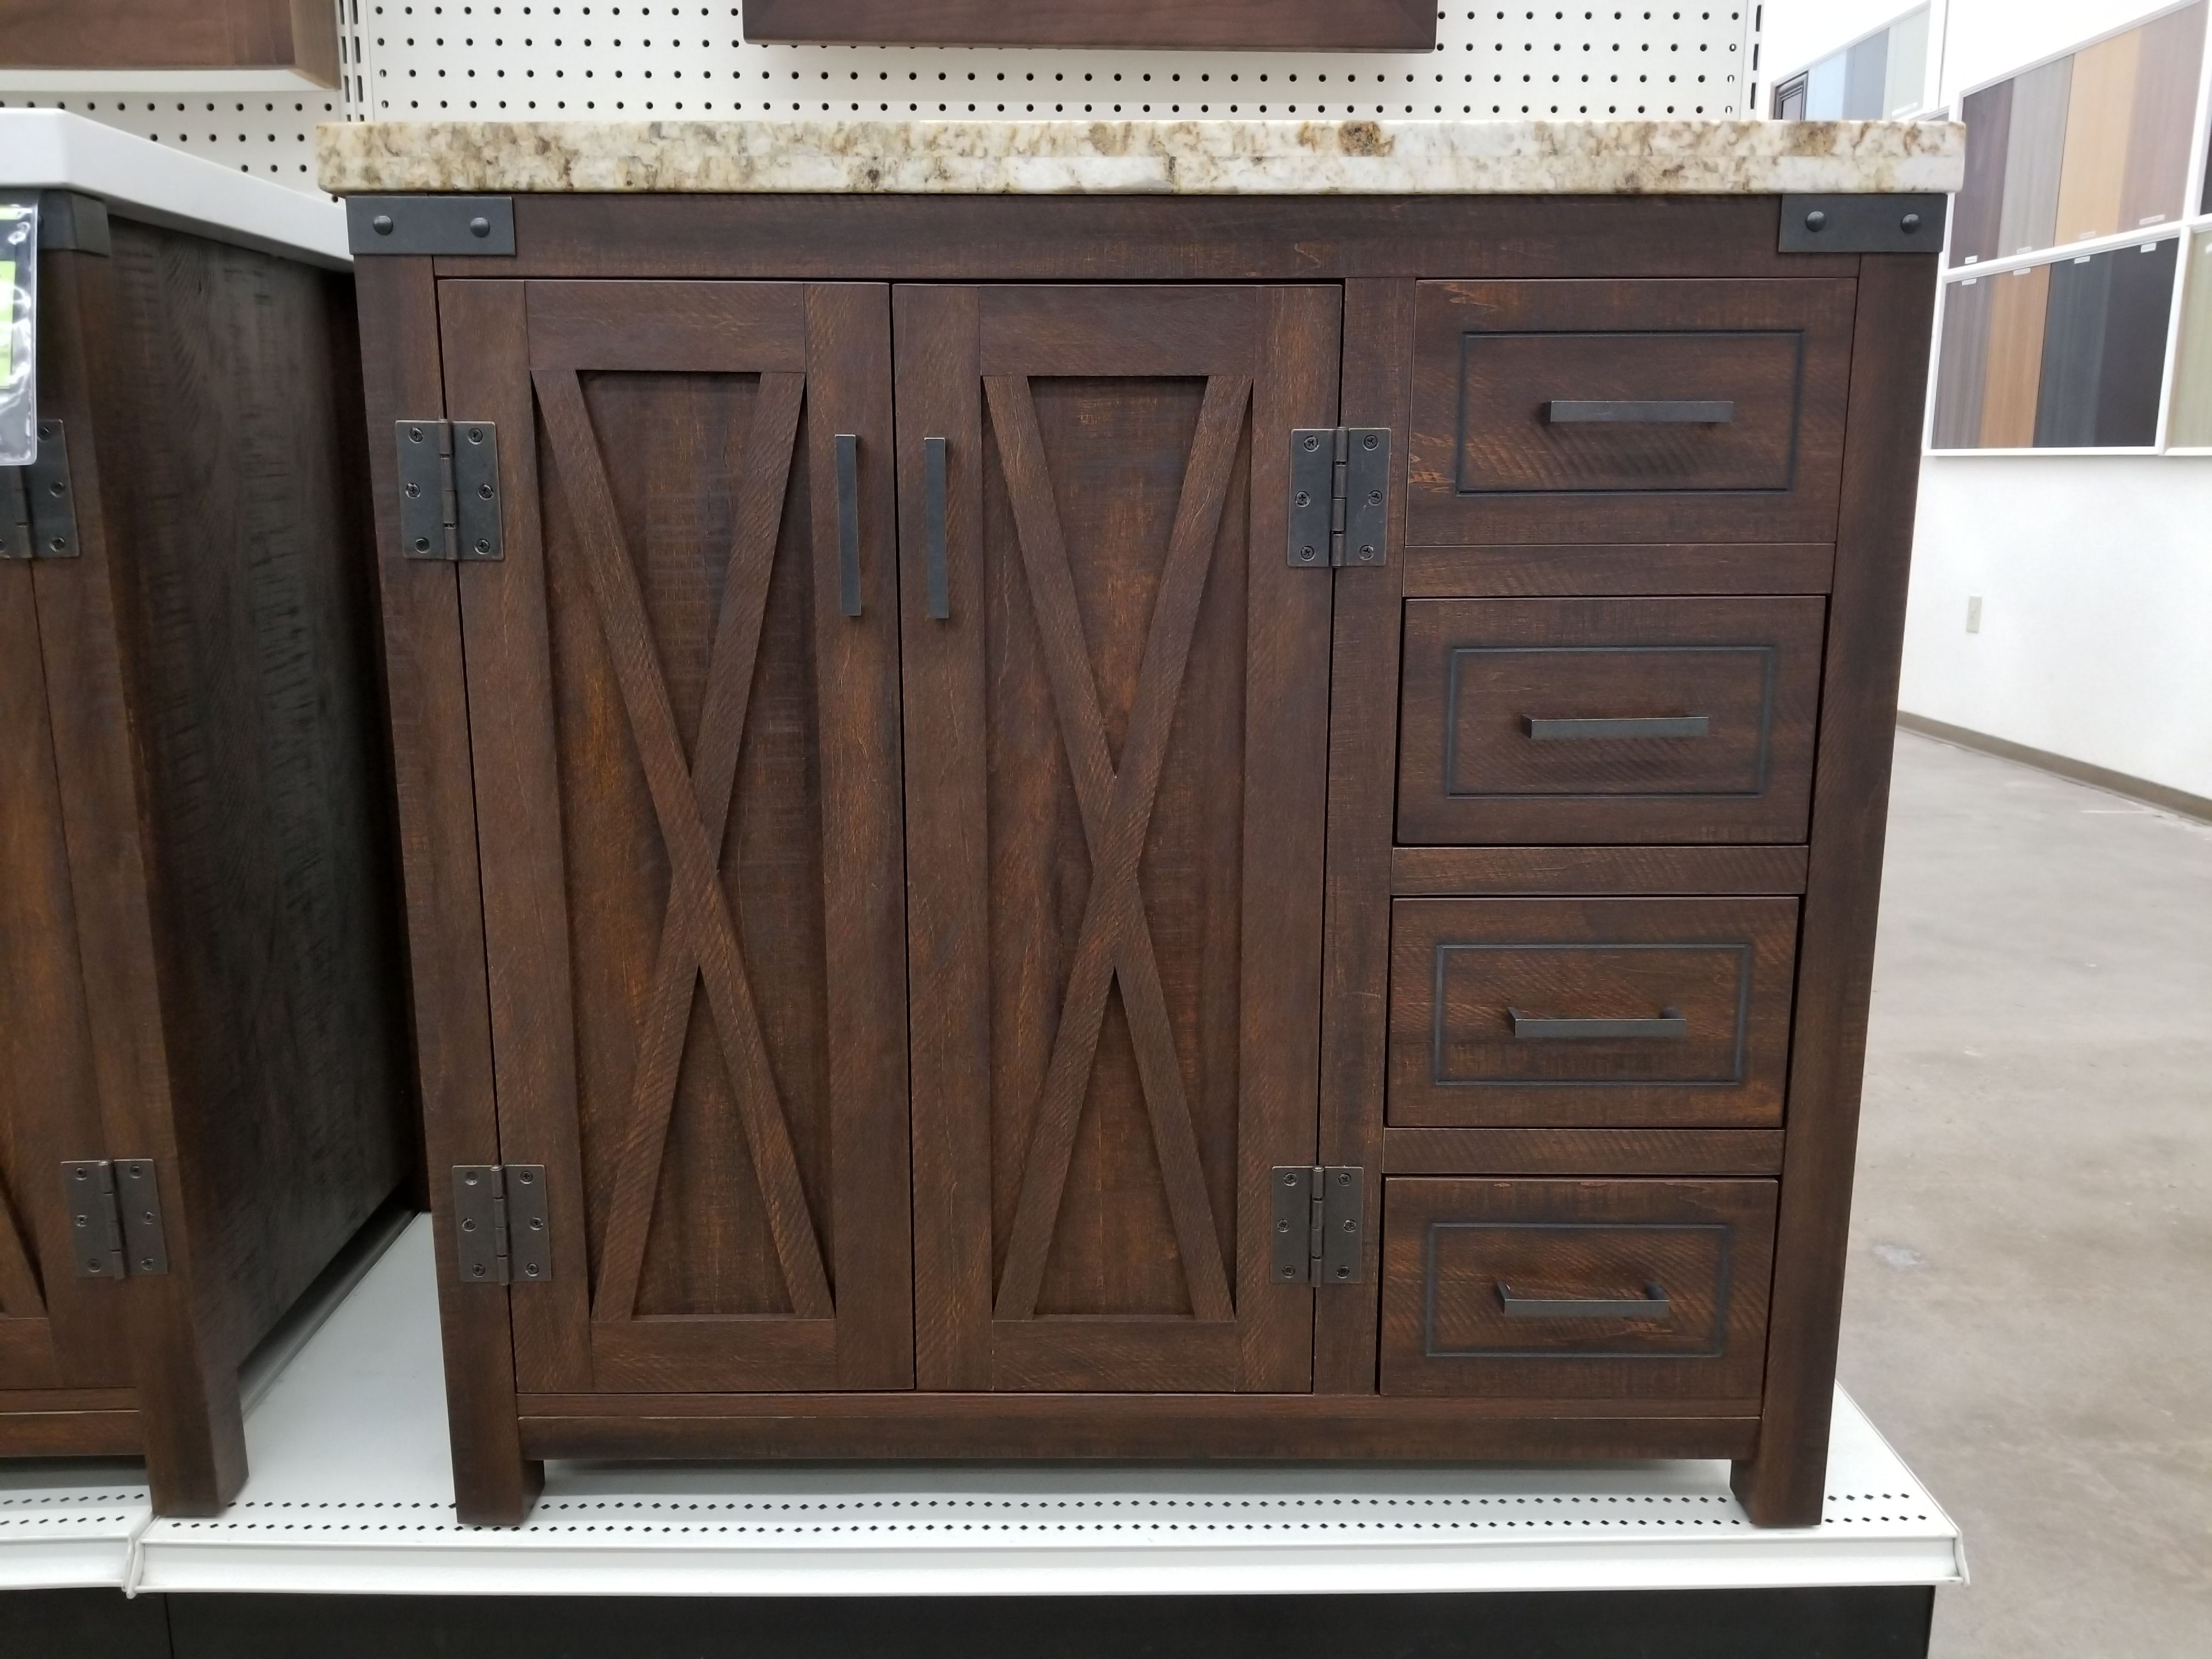 Santa Fe Antique Brown Vanity Closeout Builders Surplus Wholesale Kitchen And Bathroom Cabinets In Los Angeles California Kitchen Cabinets In Bathroom Vanity Antiques